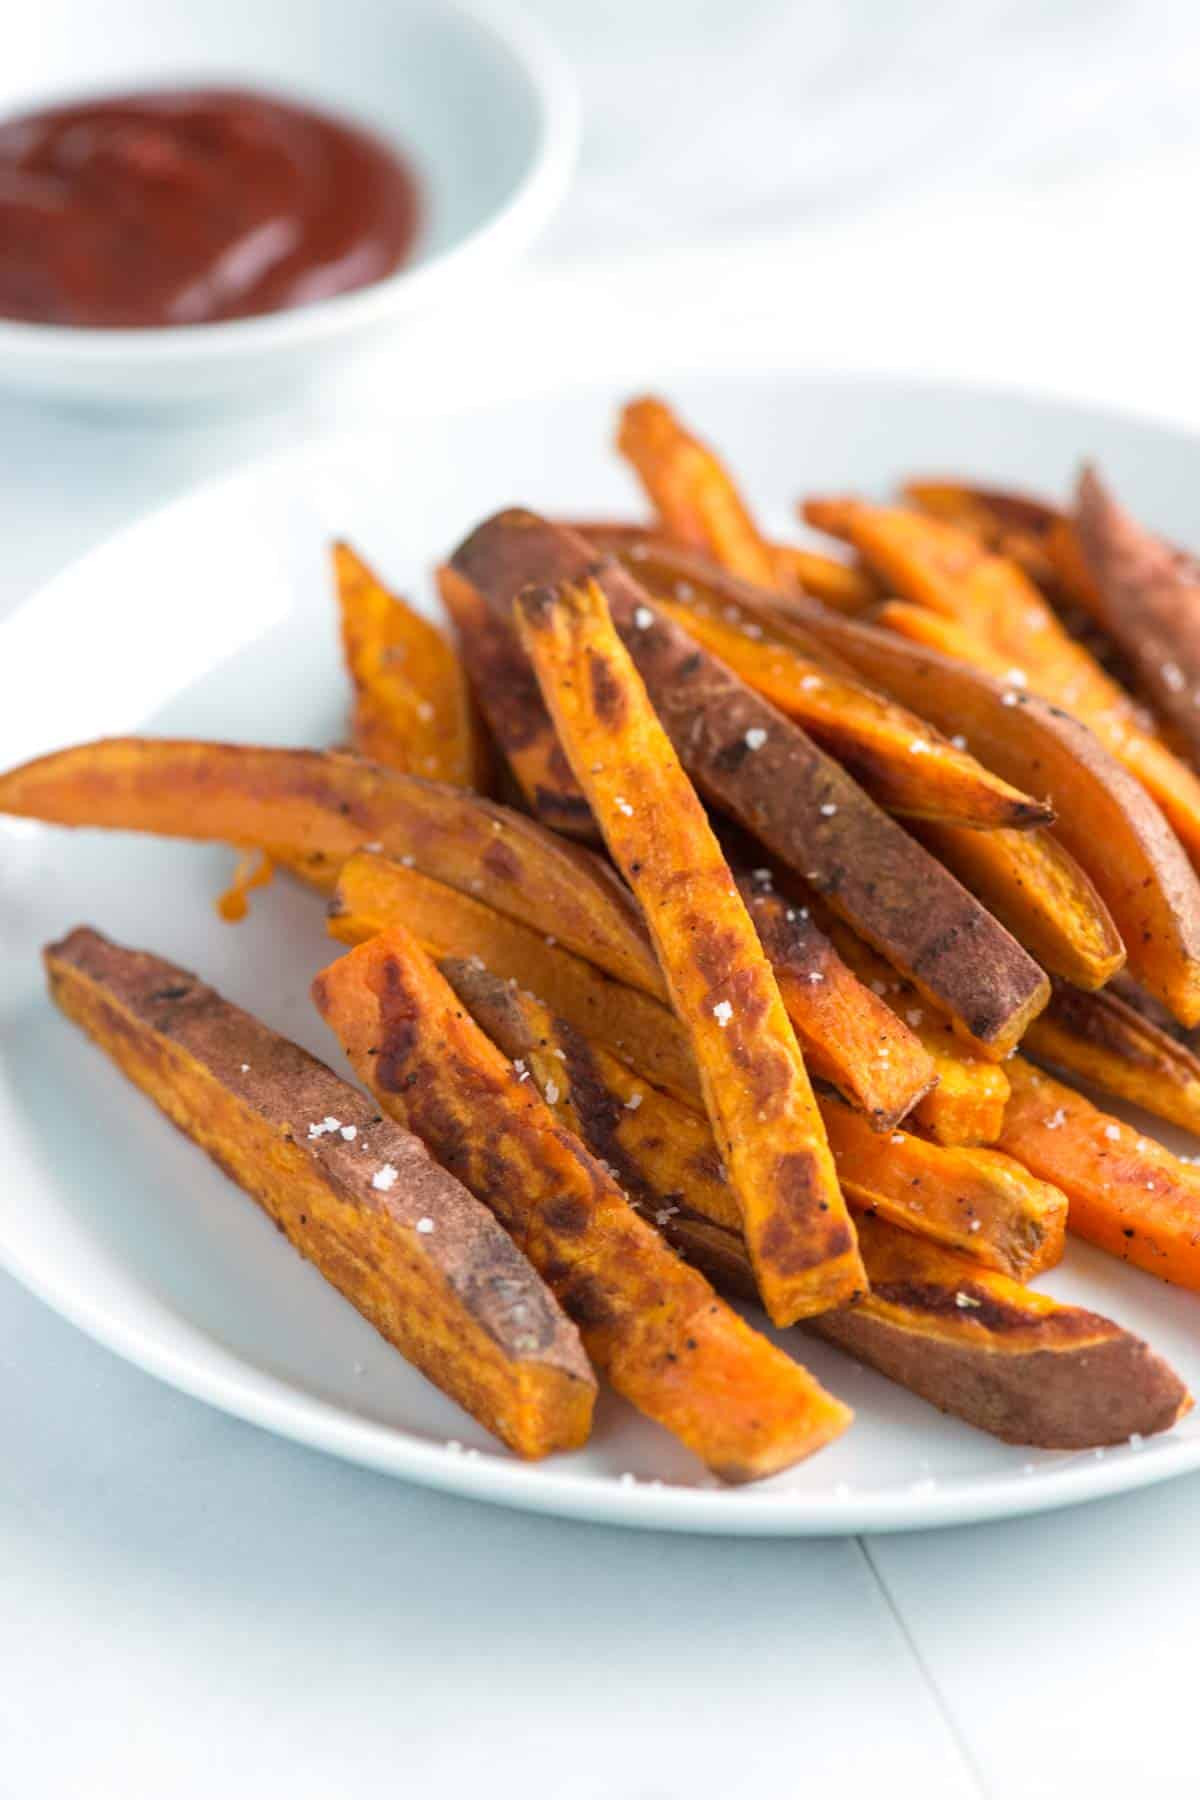 How To Make A Sweet Potato  Easy Homemade Baked Sweet Potato Fries Recipe